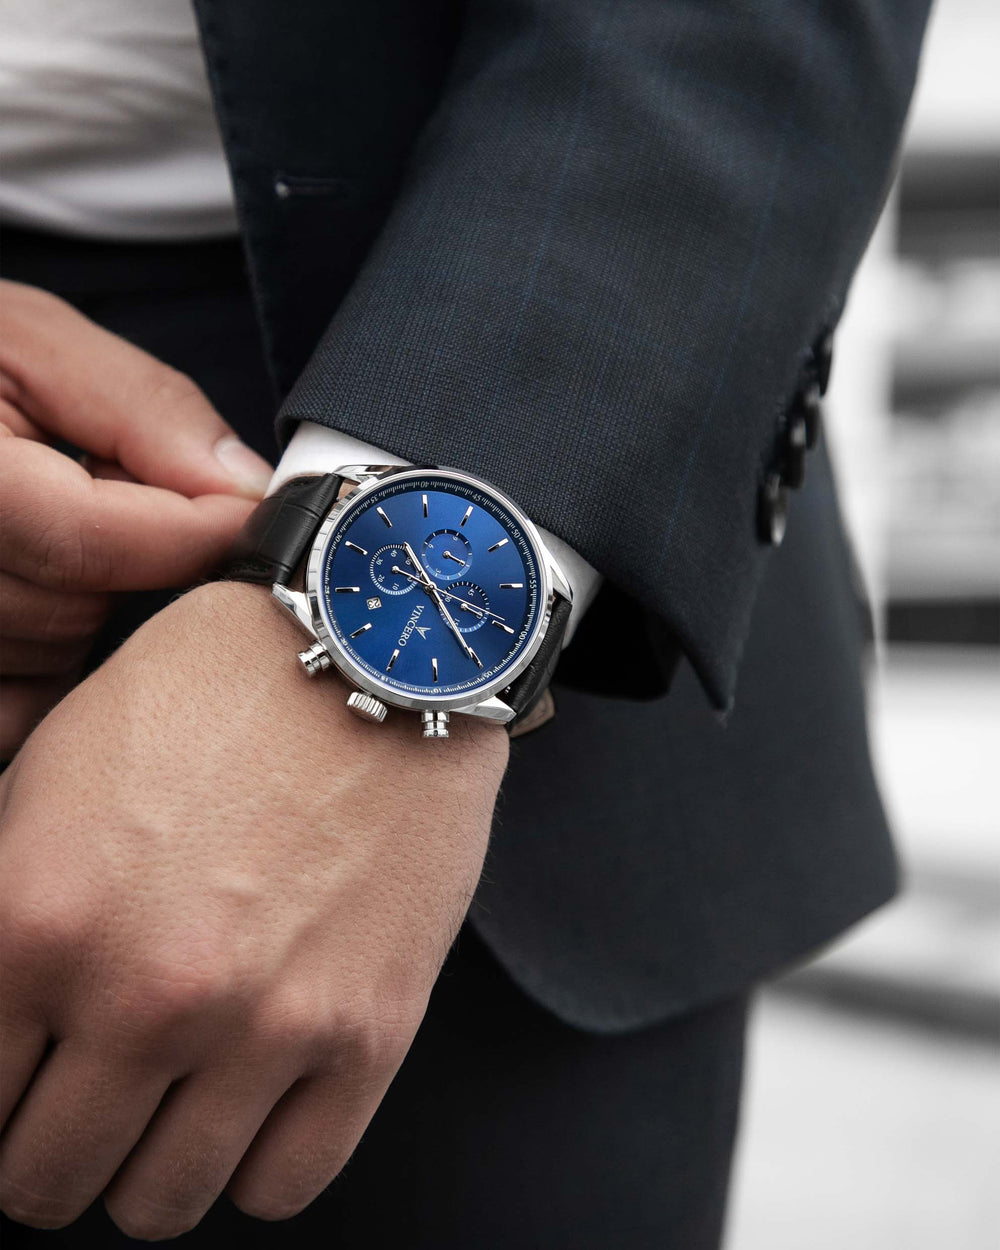 Chrono S Black Croc Italian Leather Strap Blue Watch Face Silver Case Clasp Silver Accents